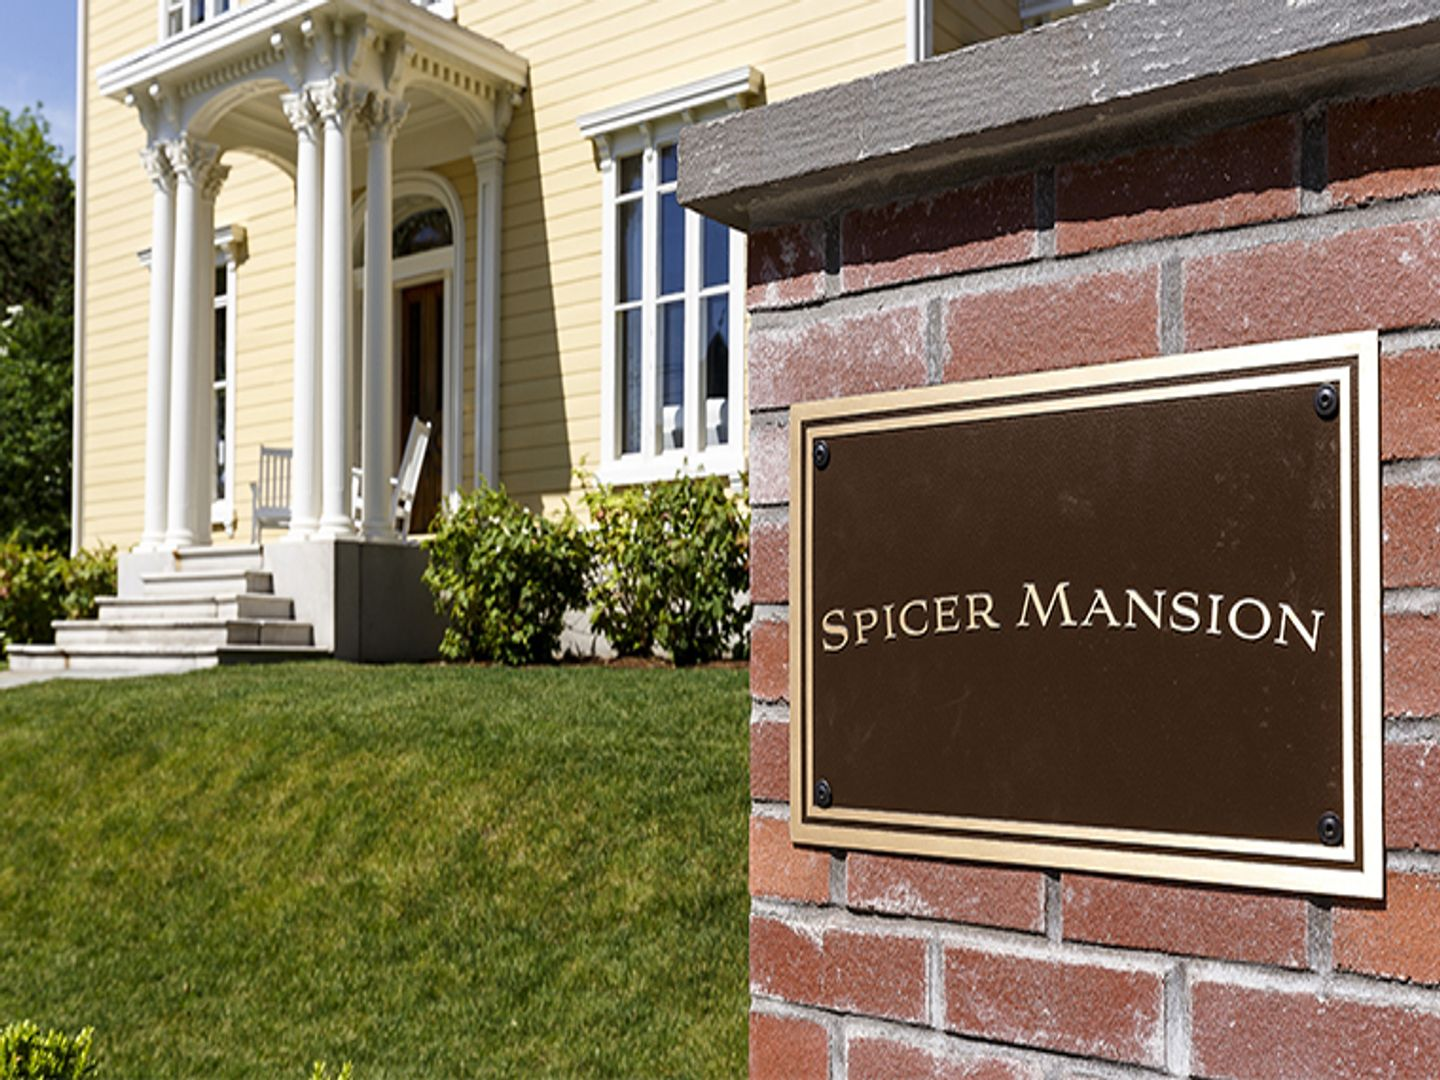 A sign on the side of a building at Spicer Mansion.